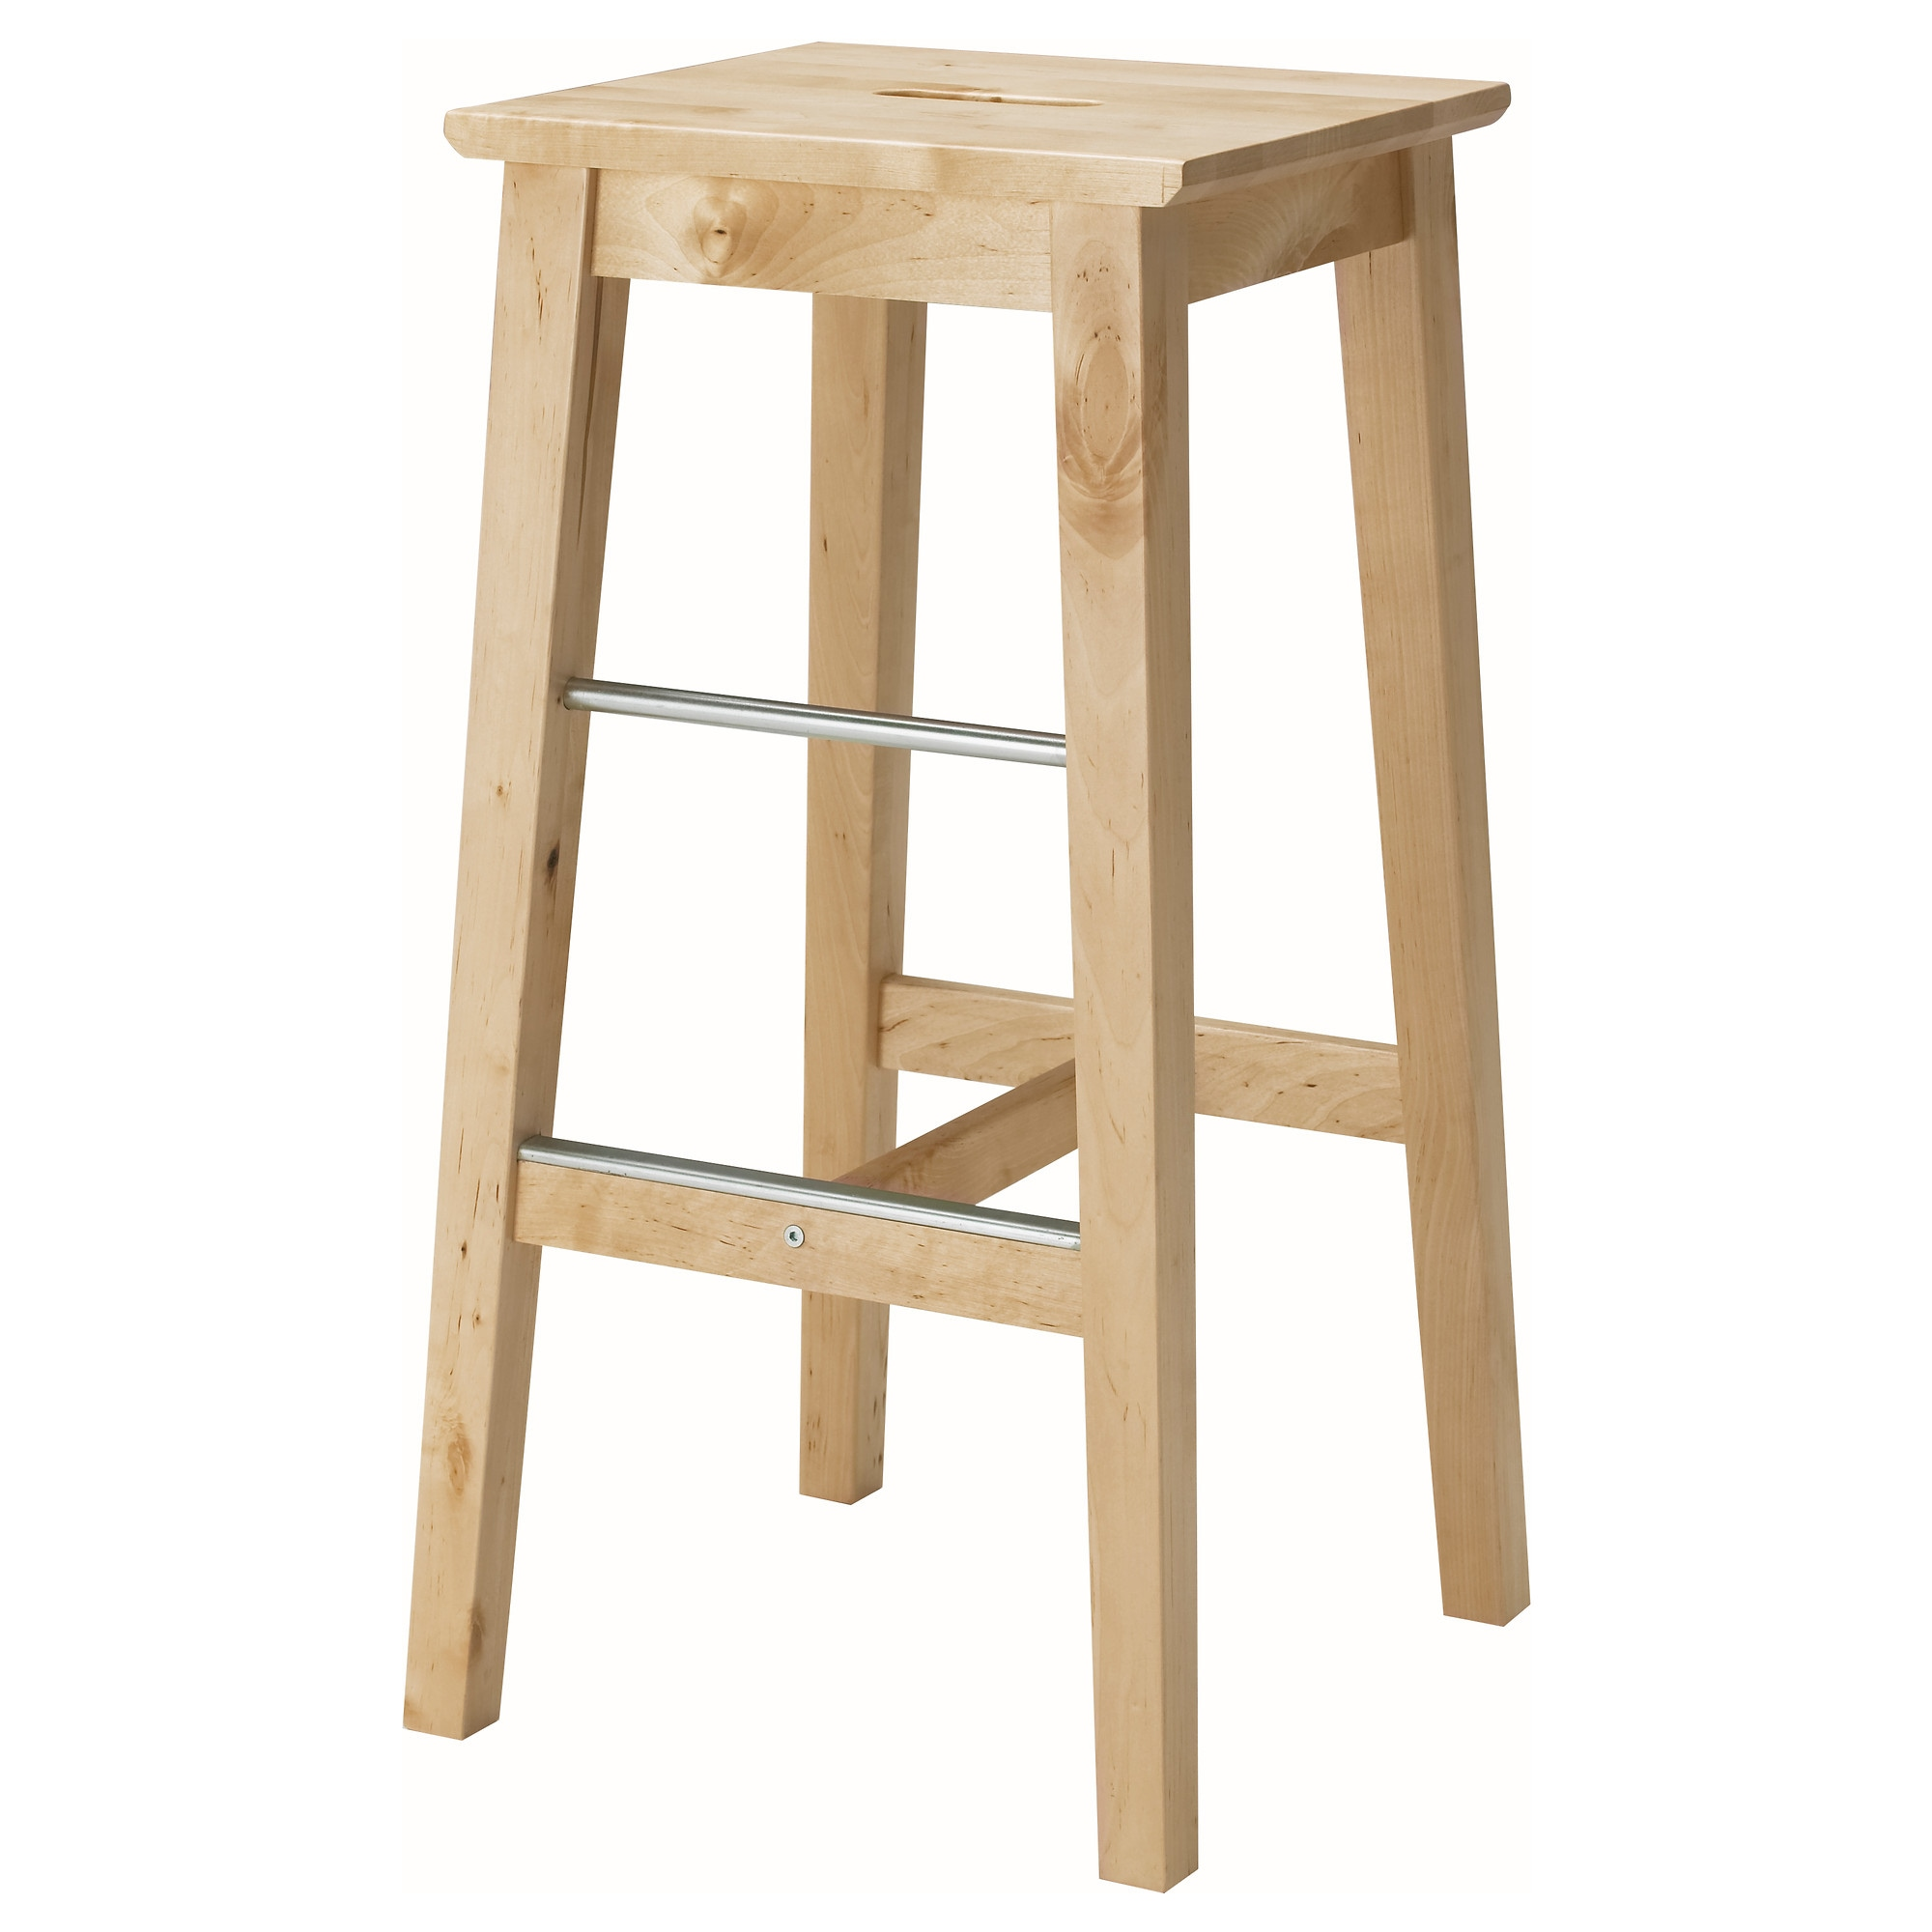 BOSSE Bar stool IKEA